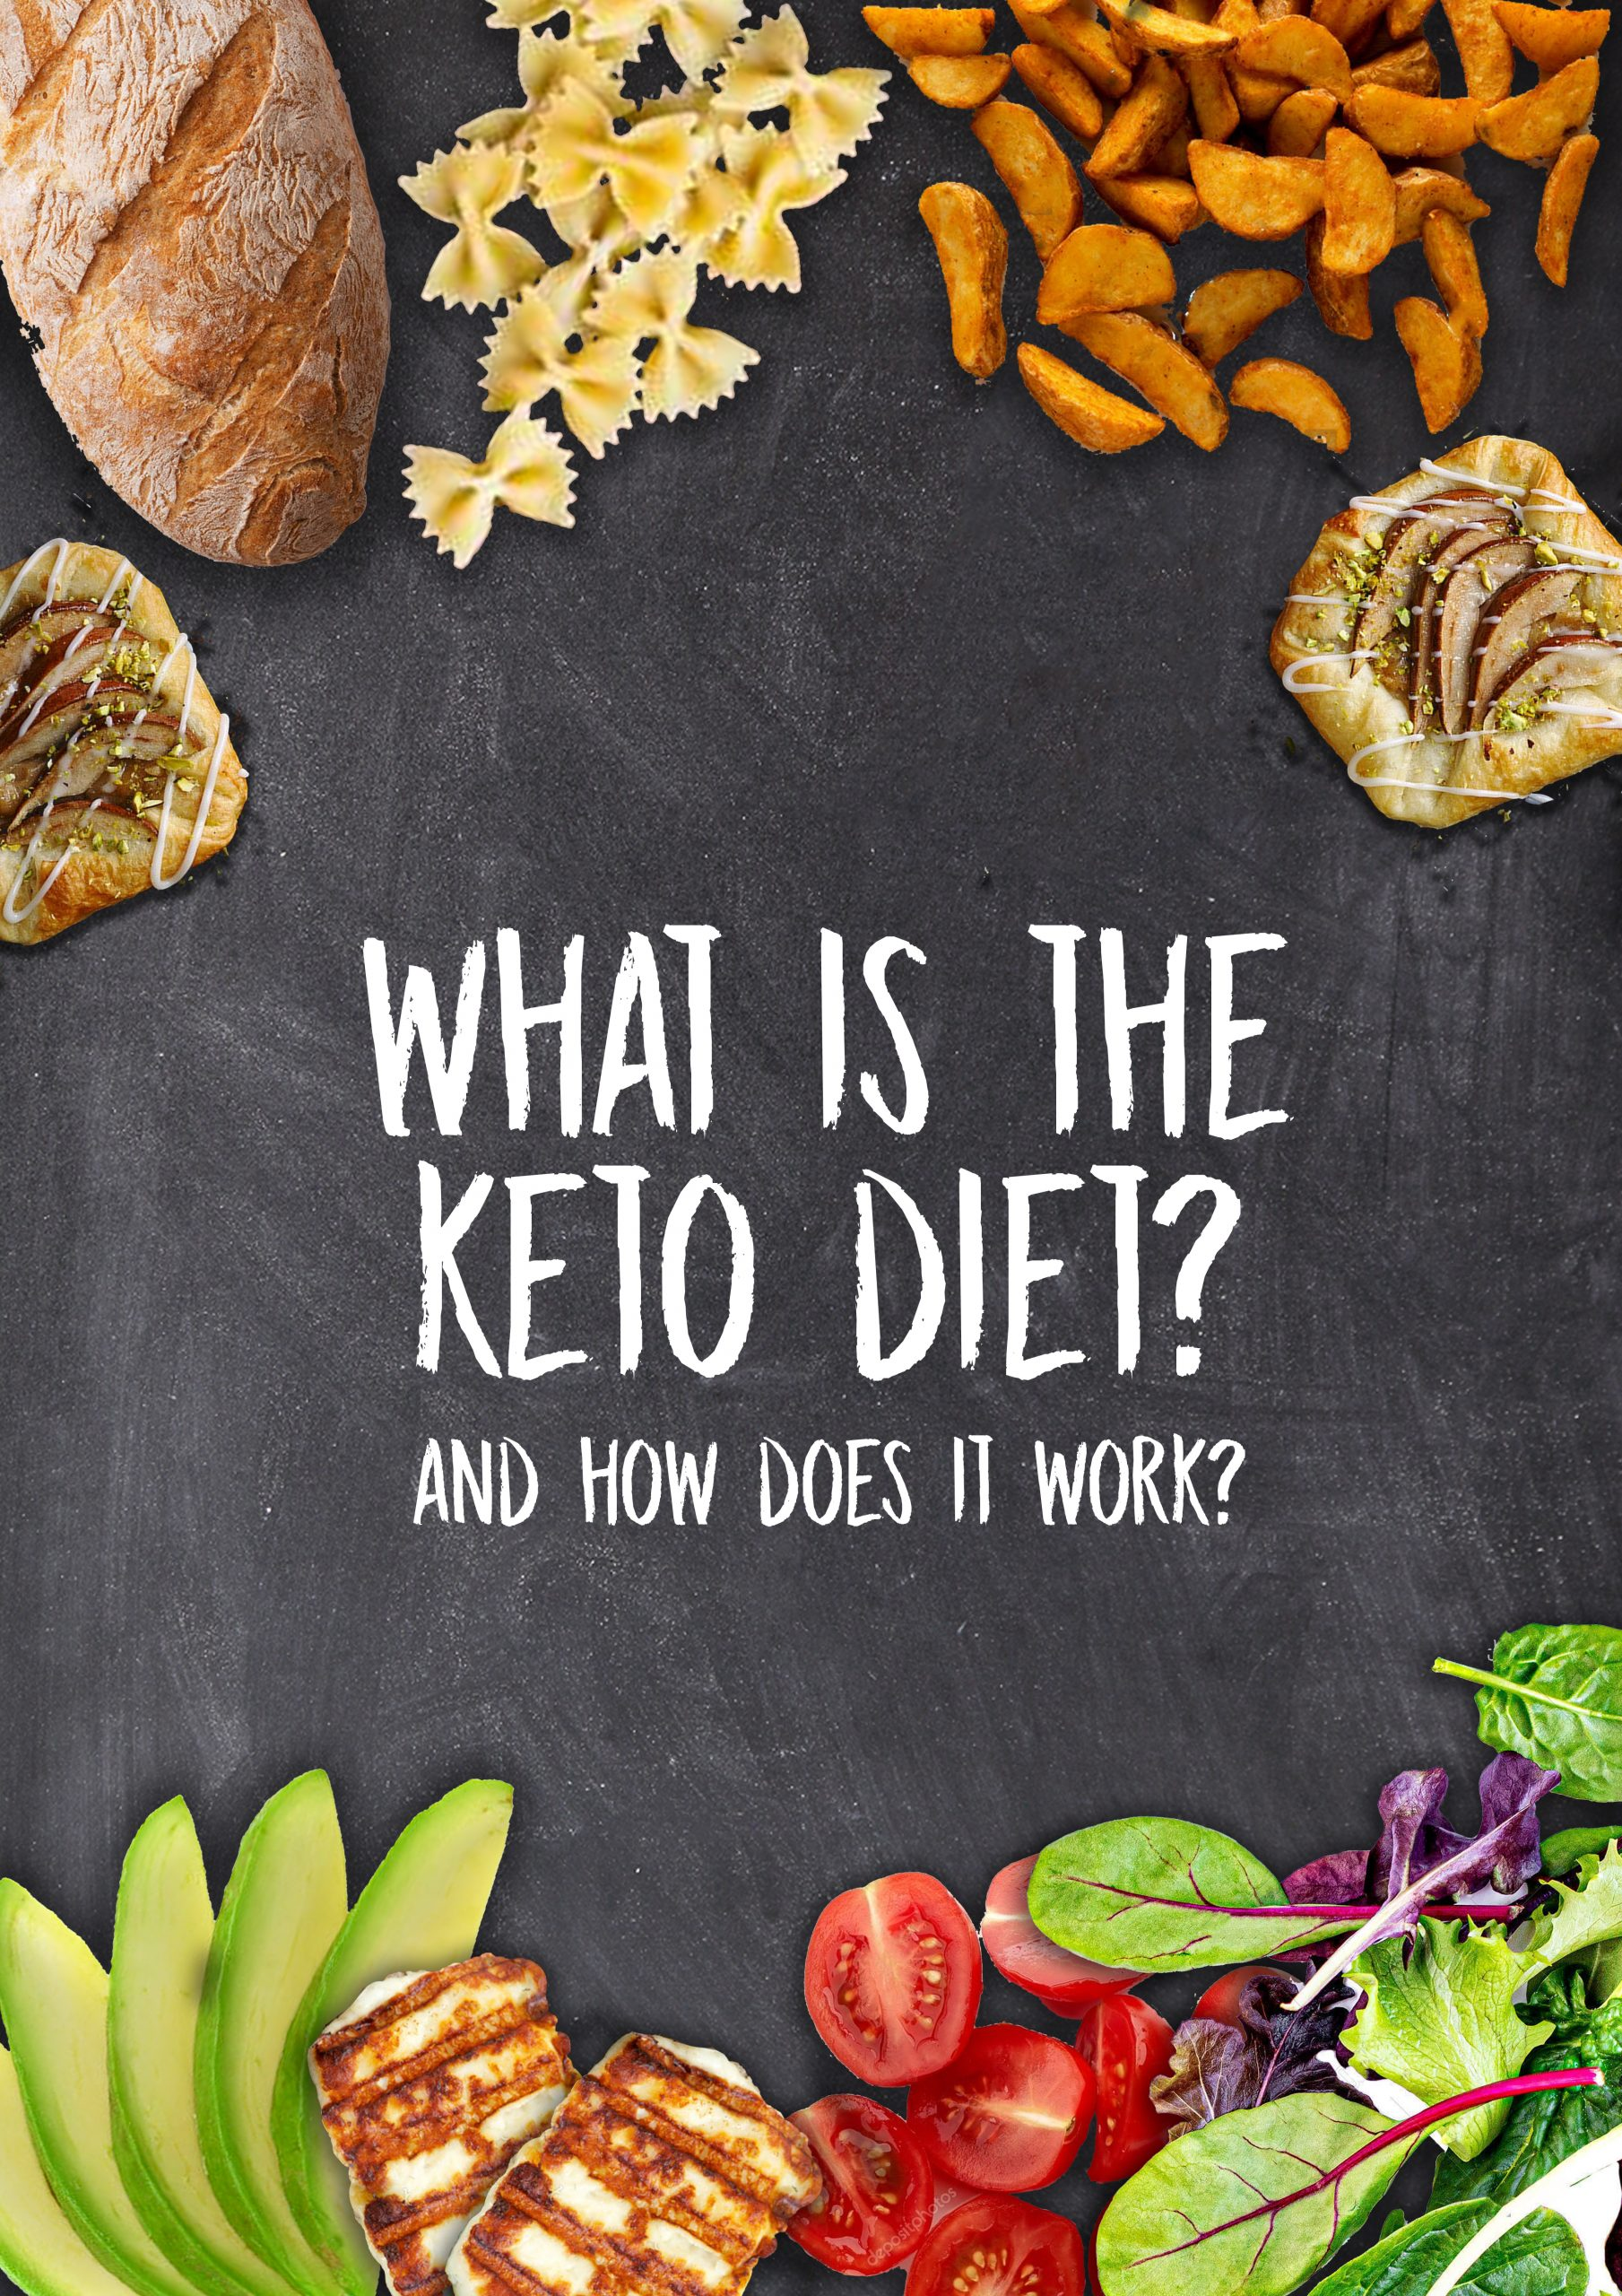 what it the keto diet?